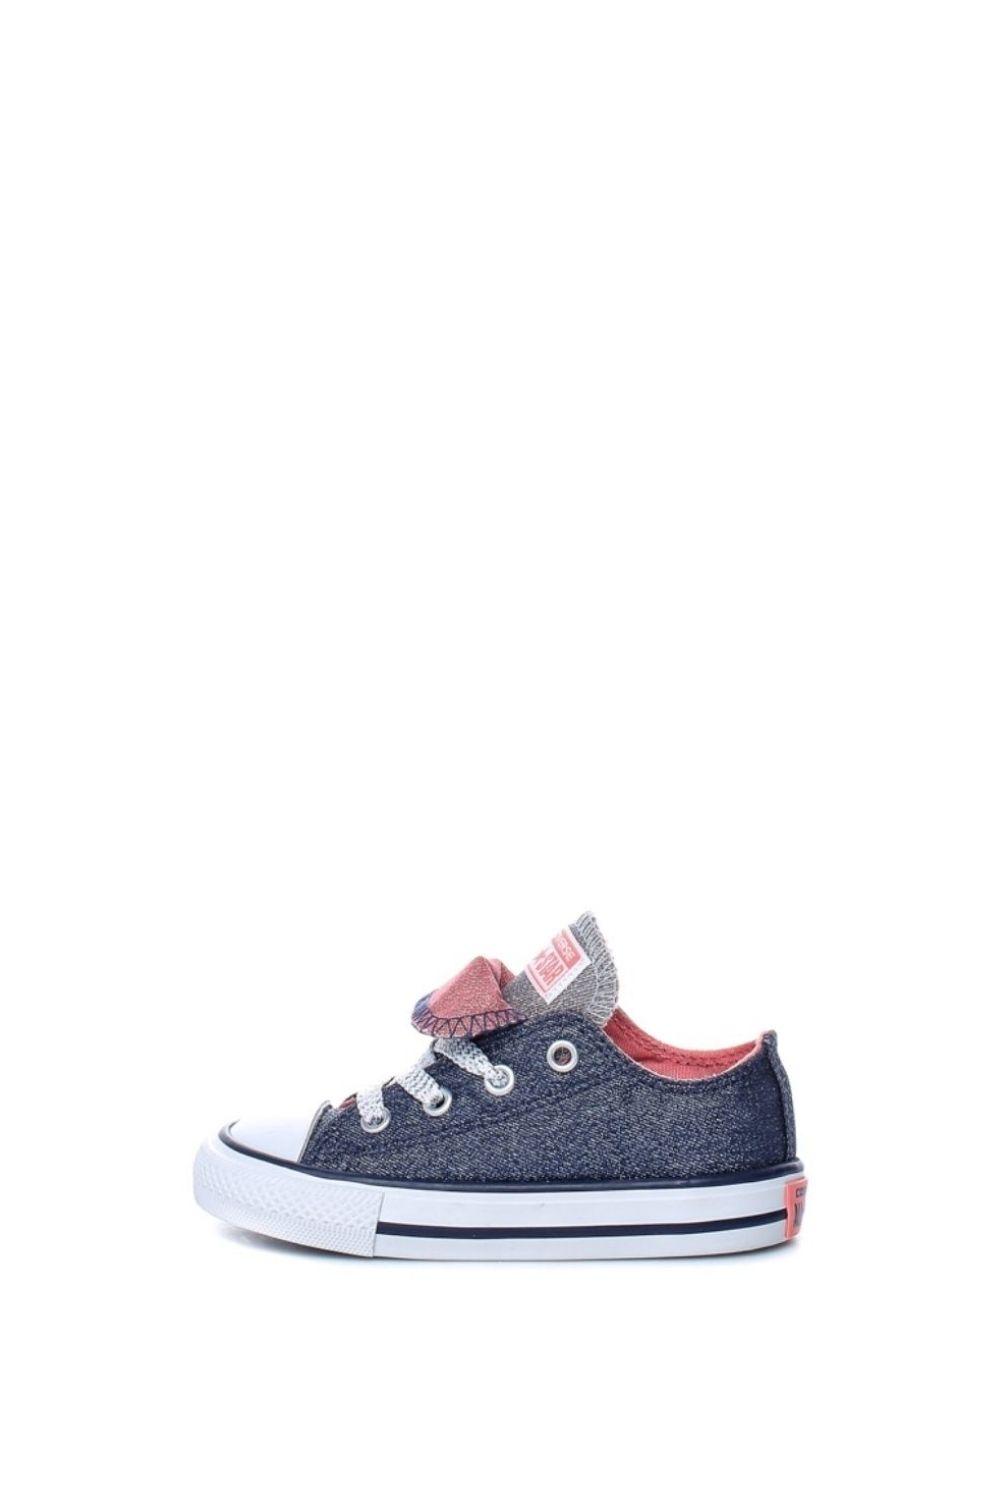 CONVERSE – Βρεφικά παπούτσια Chuck Taylor All Star Double μπλε